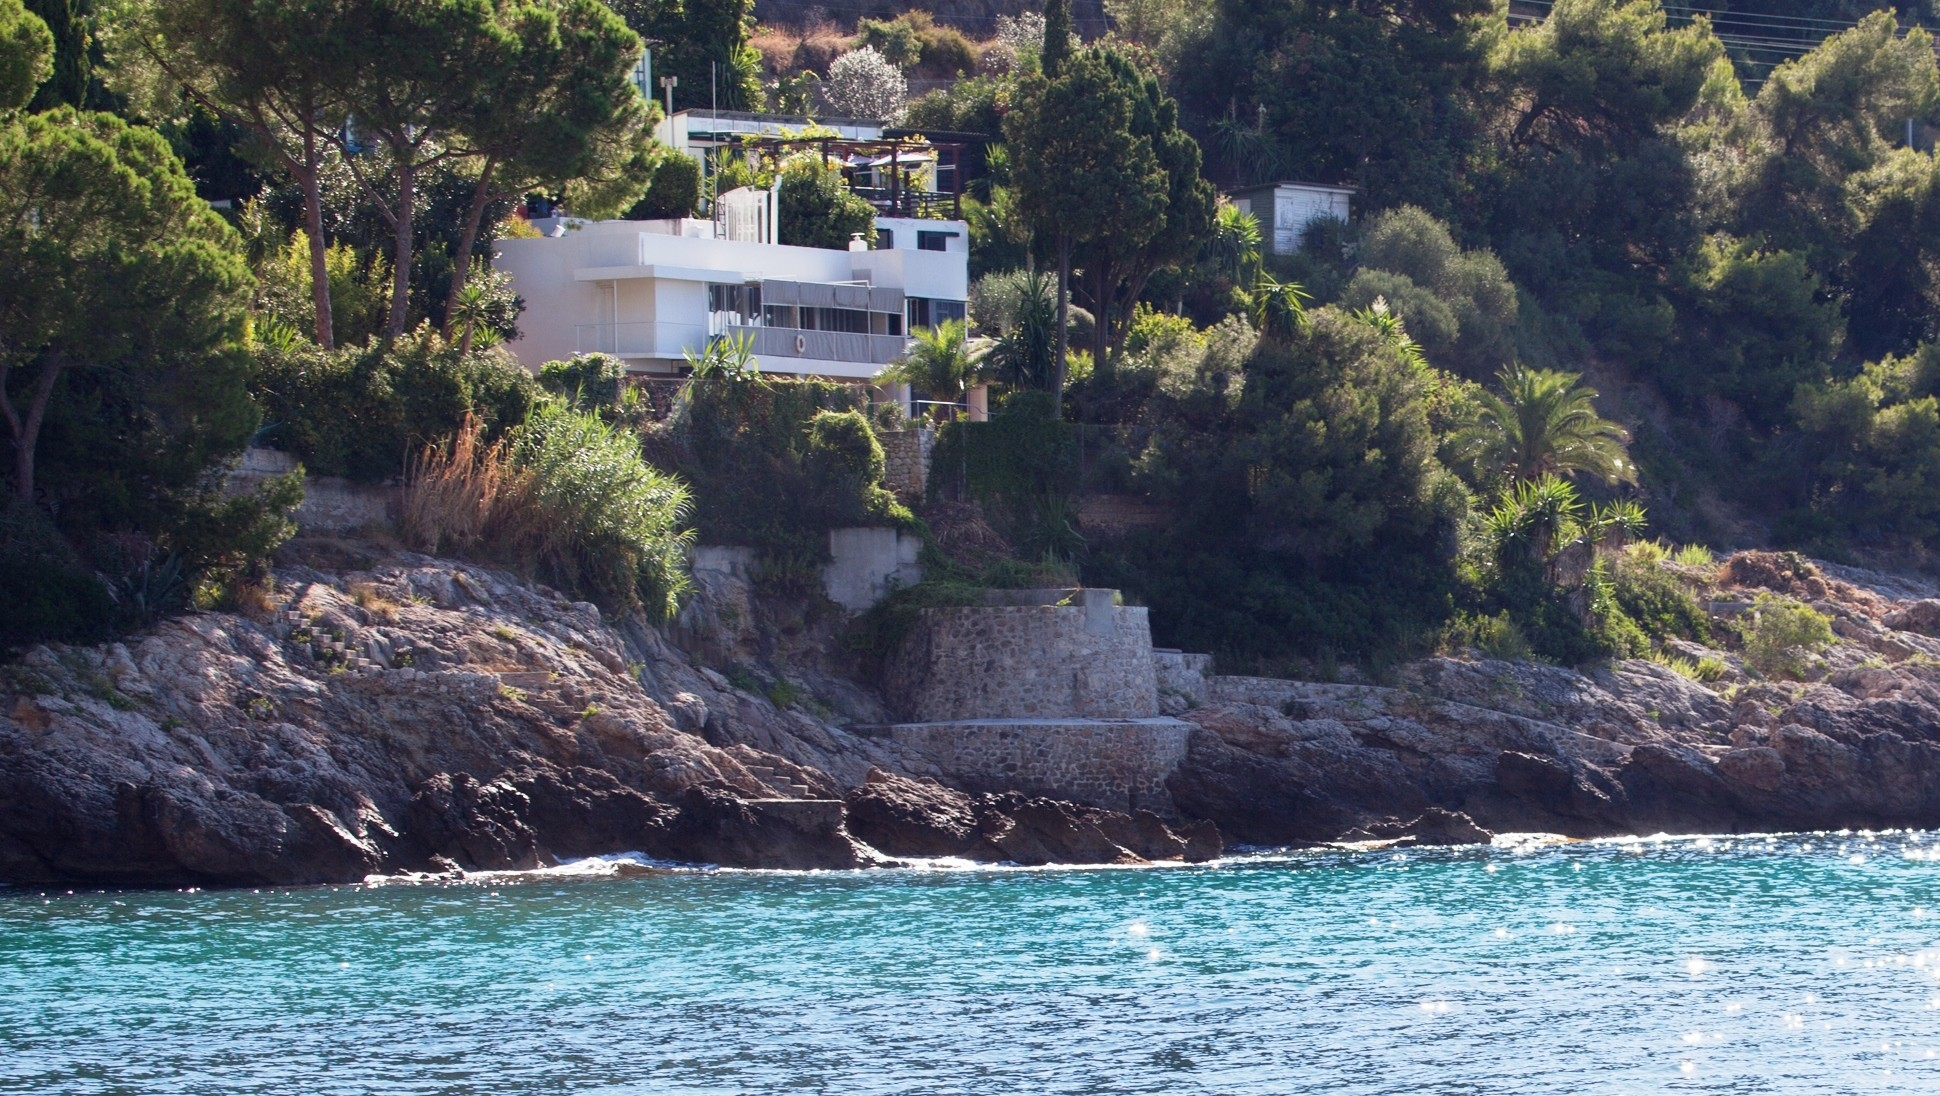 Eileen Gray's Restored E1027 Opens to the Public , E1027, Roquebrune-Cap-Martin by Eileen Gray. Image © Julian Lennon 2014